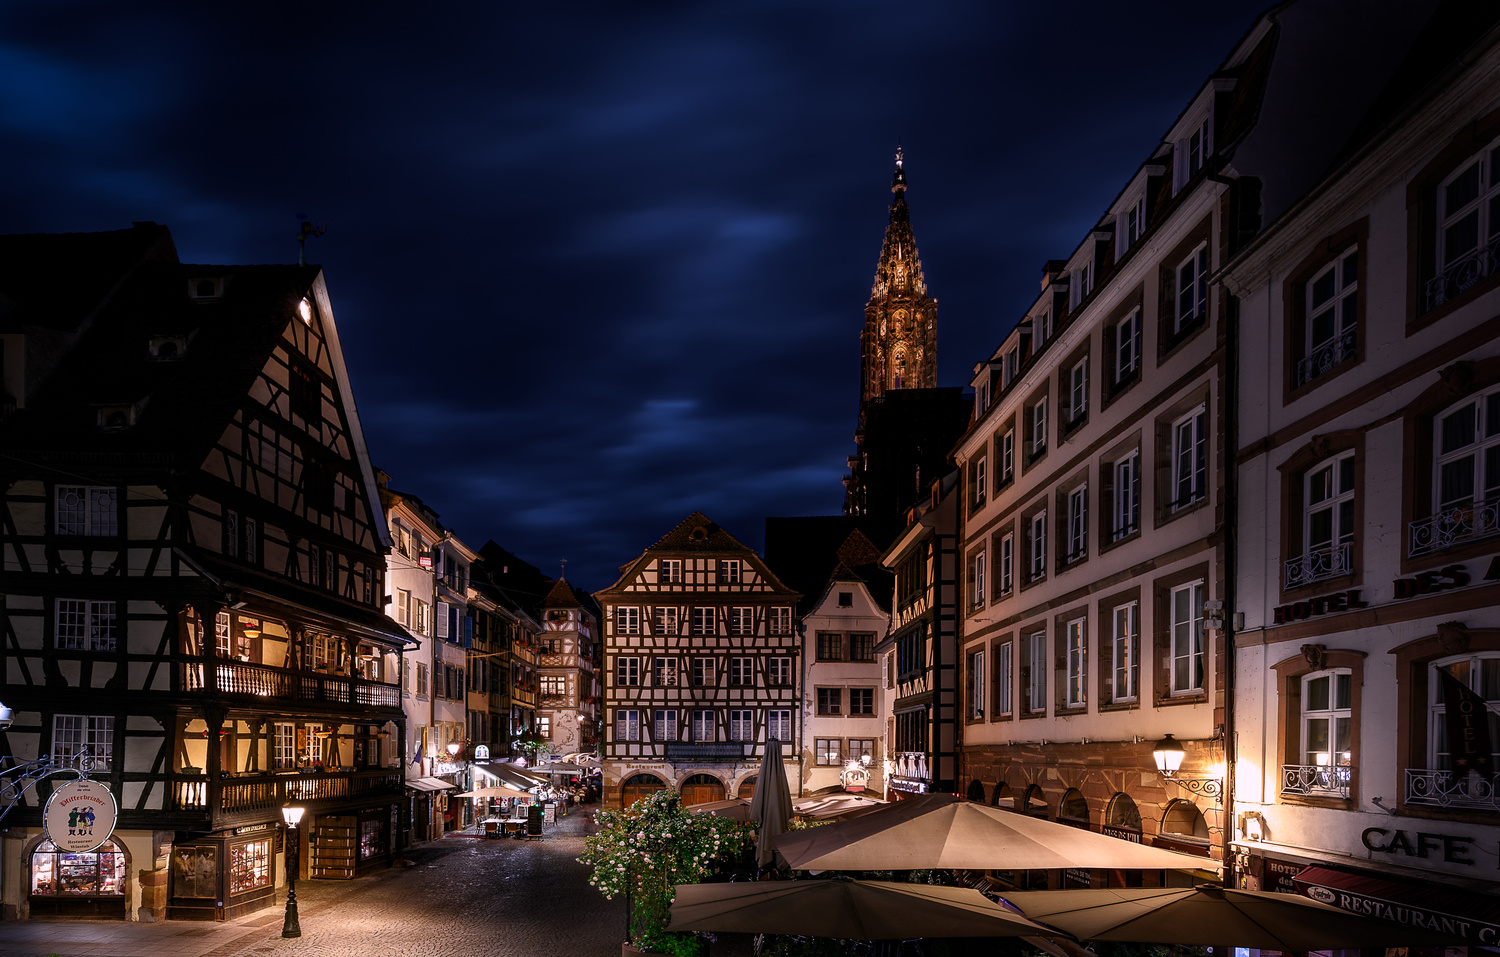 Strasbourg (France) - Old city place by Thomas Andlauer